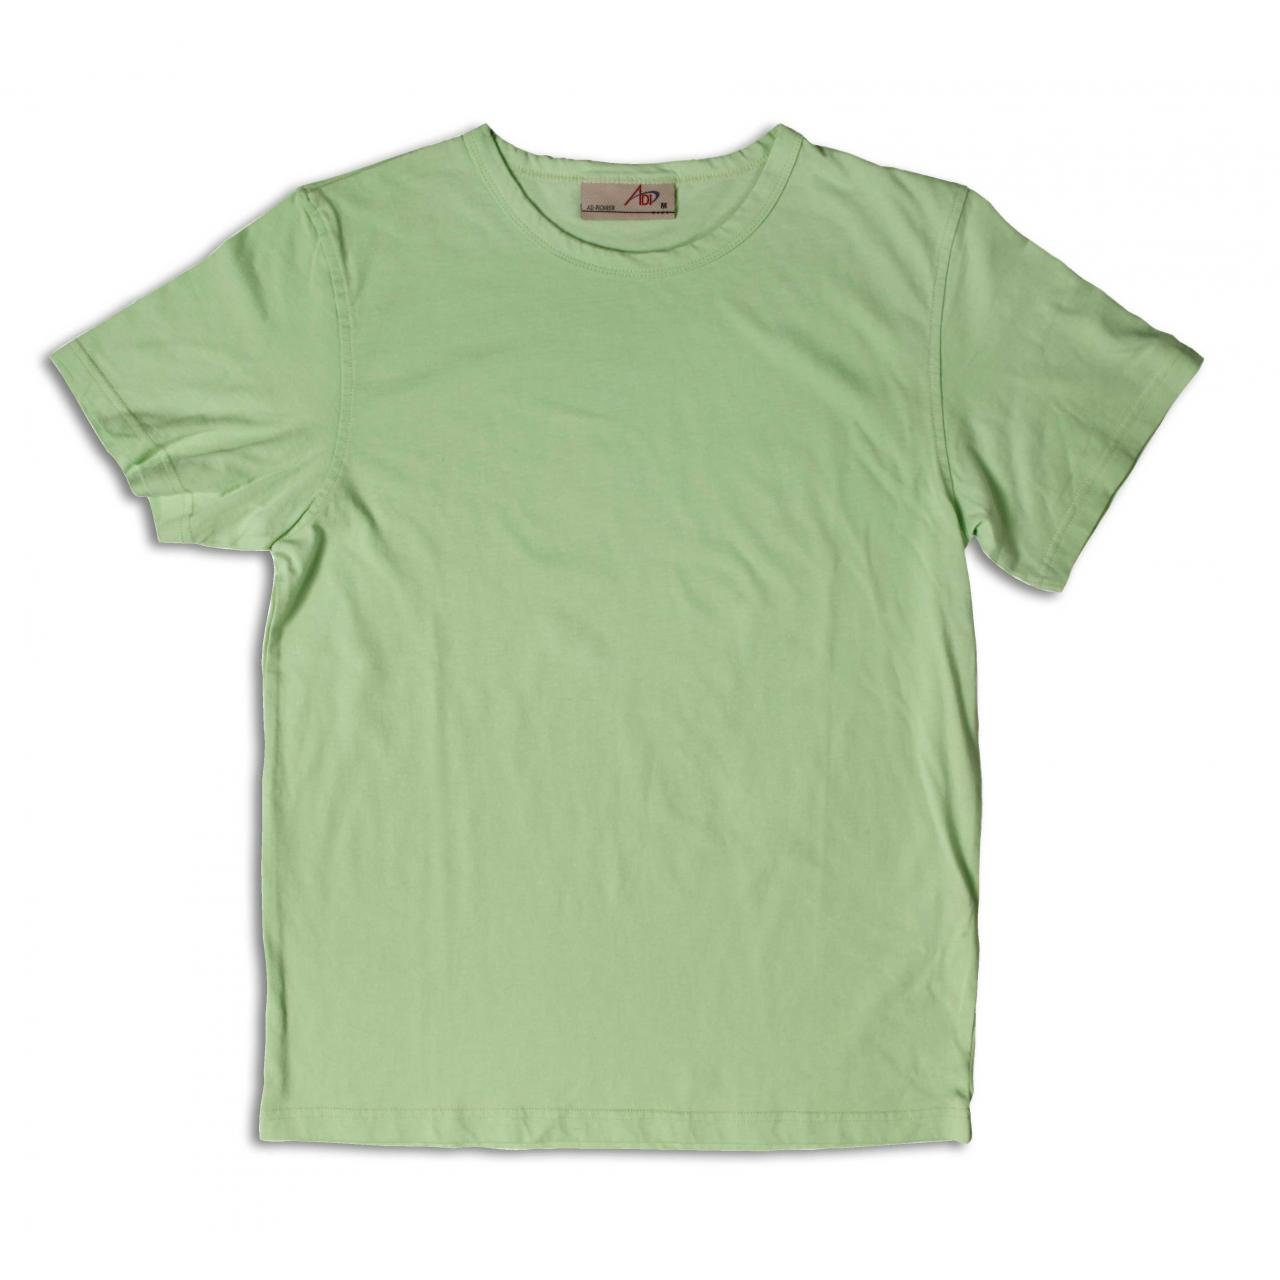 t-shirt cotton t-shirt